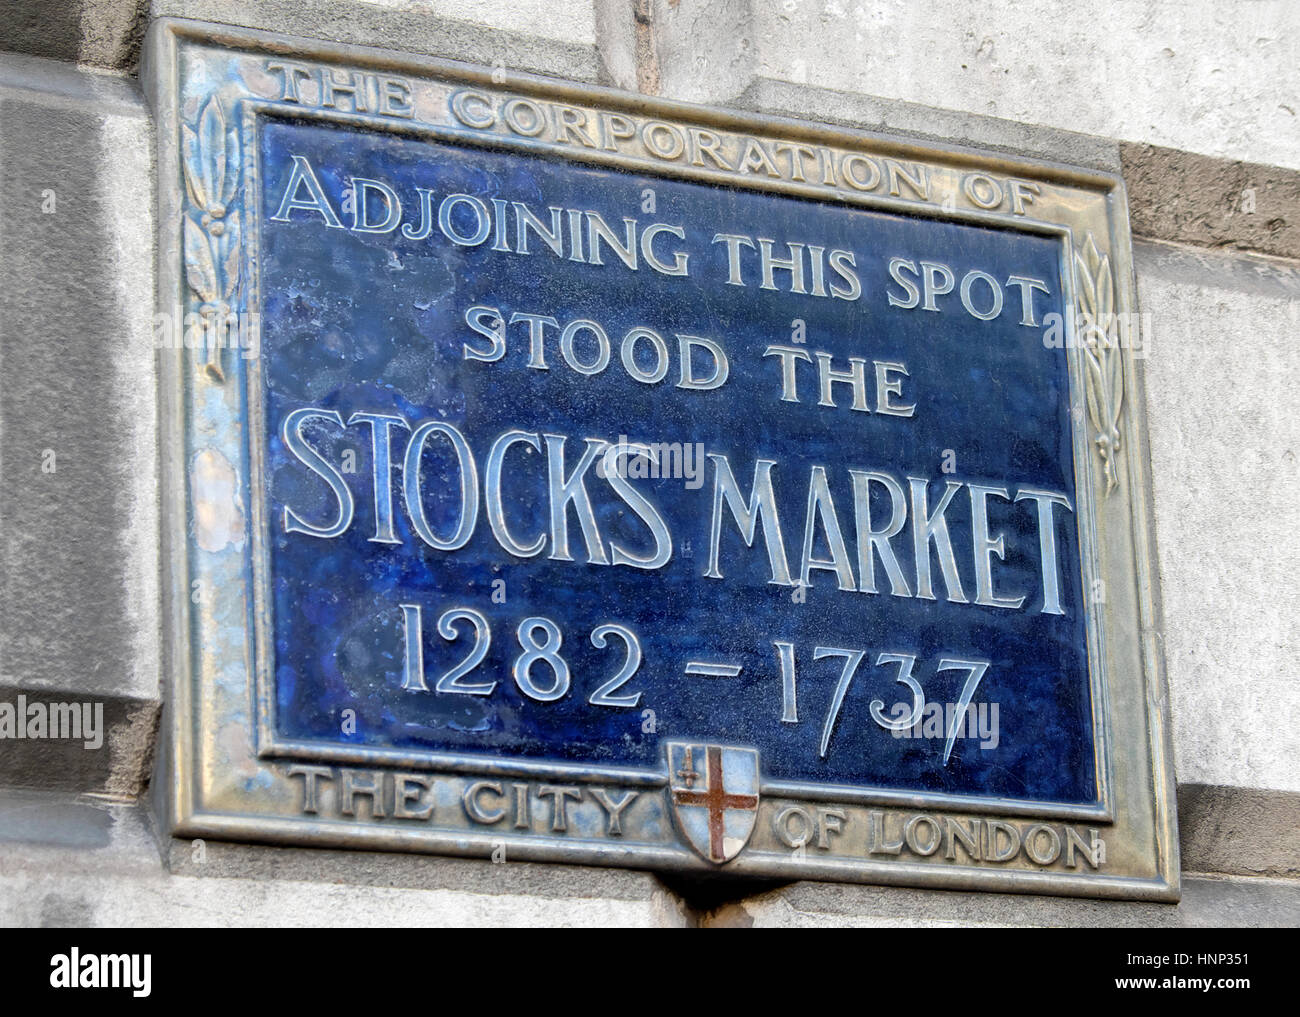 Corporation of London blue plaque for the London stock stocks market site  from 1282 - 1737 on a building in the City of London, UK KATHY DEWITT